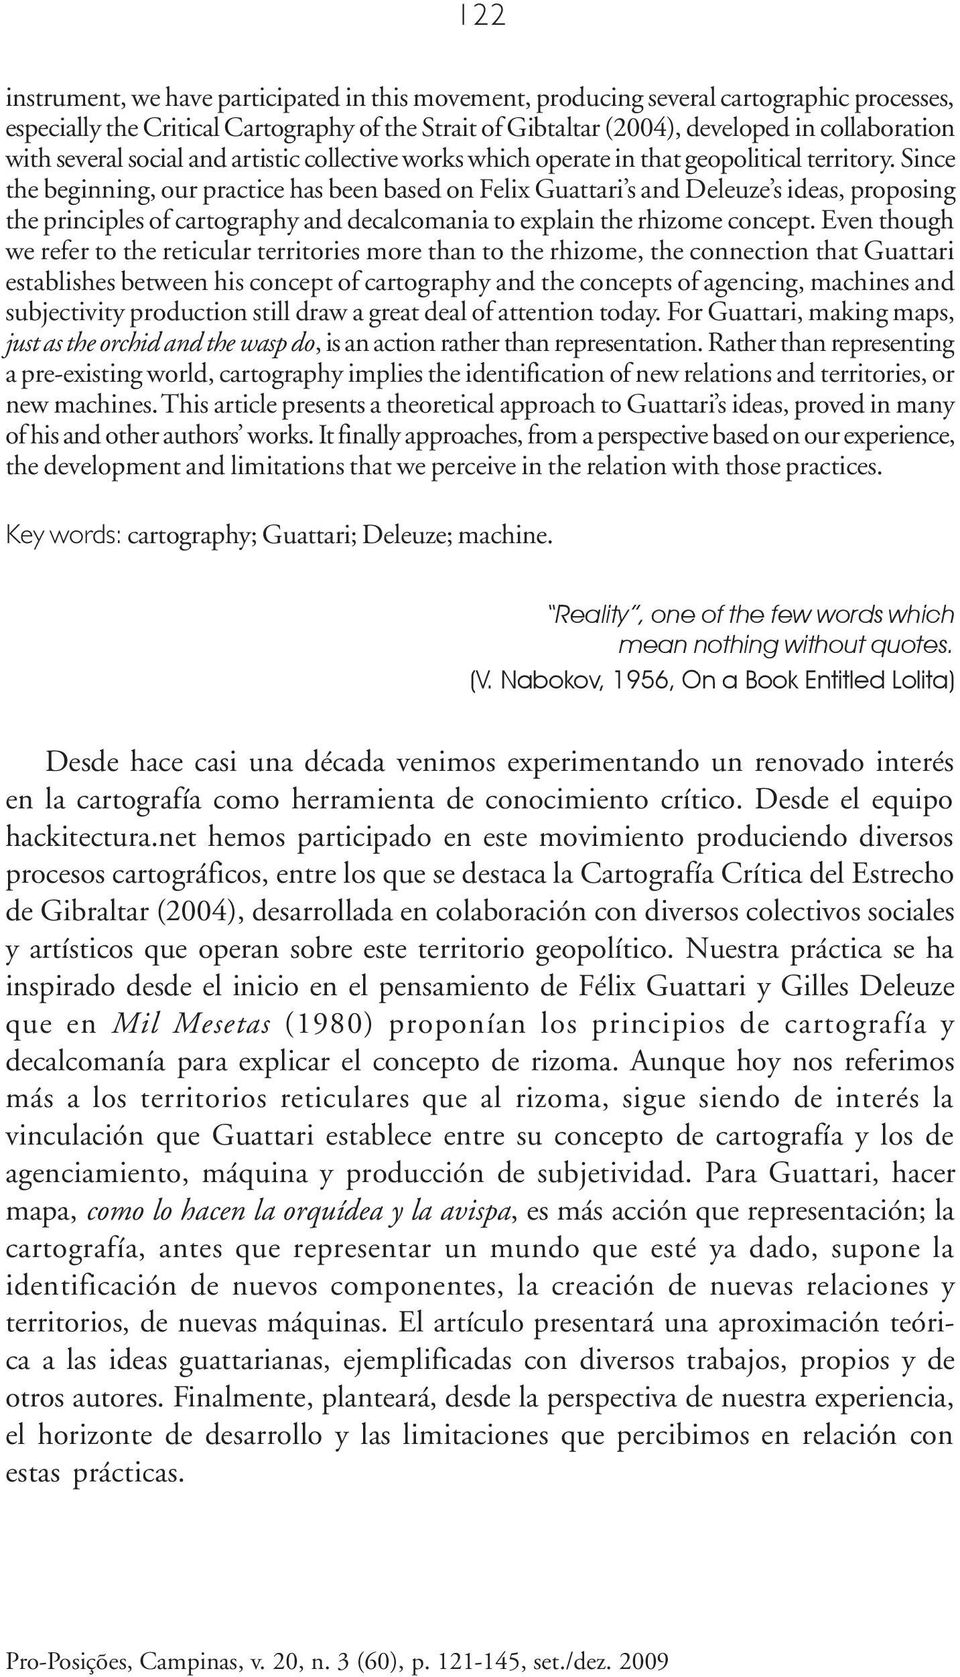 Since the beginning, our practice has been based on Felix Guattari s and Deleuze s ideas, proposing the principles of cartography and decalcomania to explain the rhizome concept.